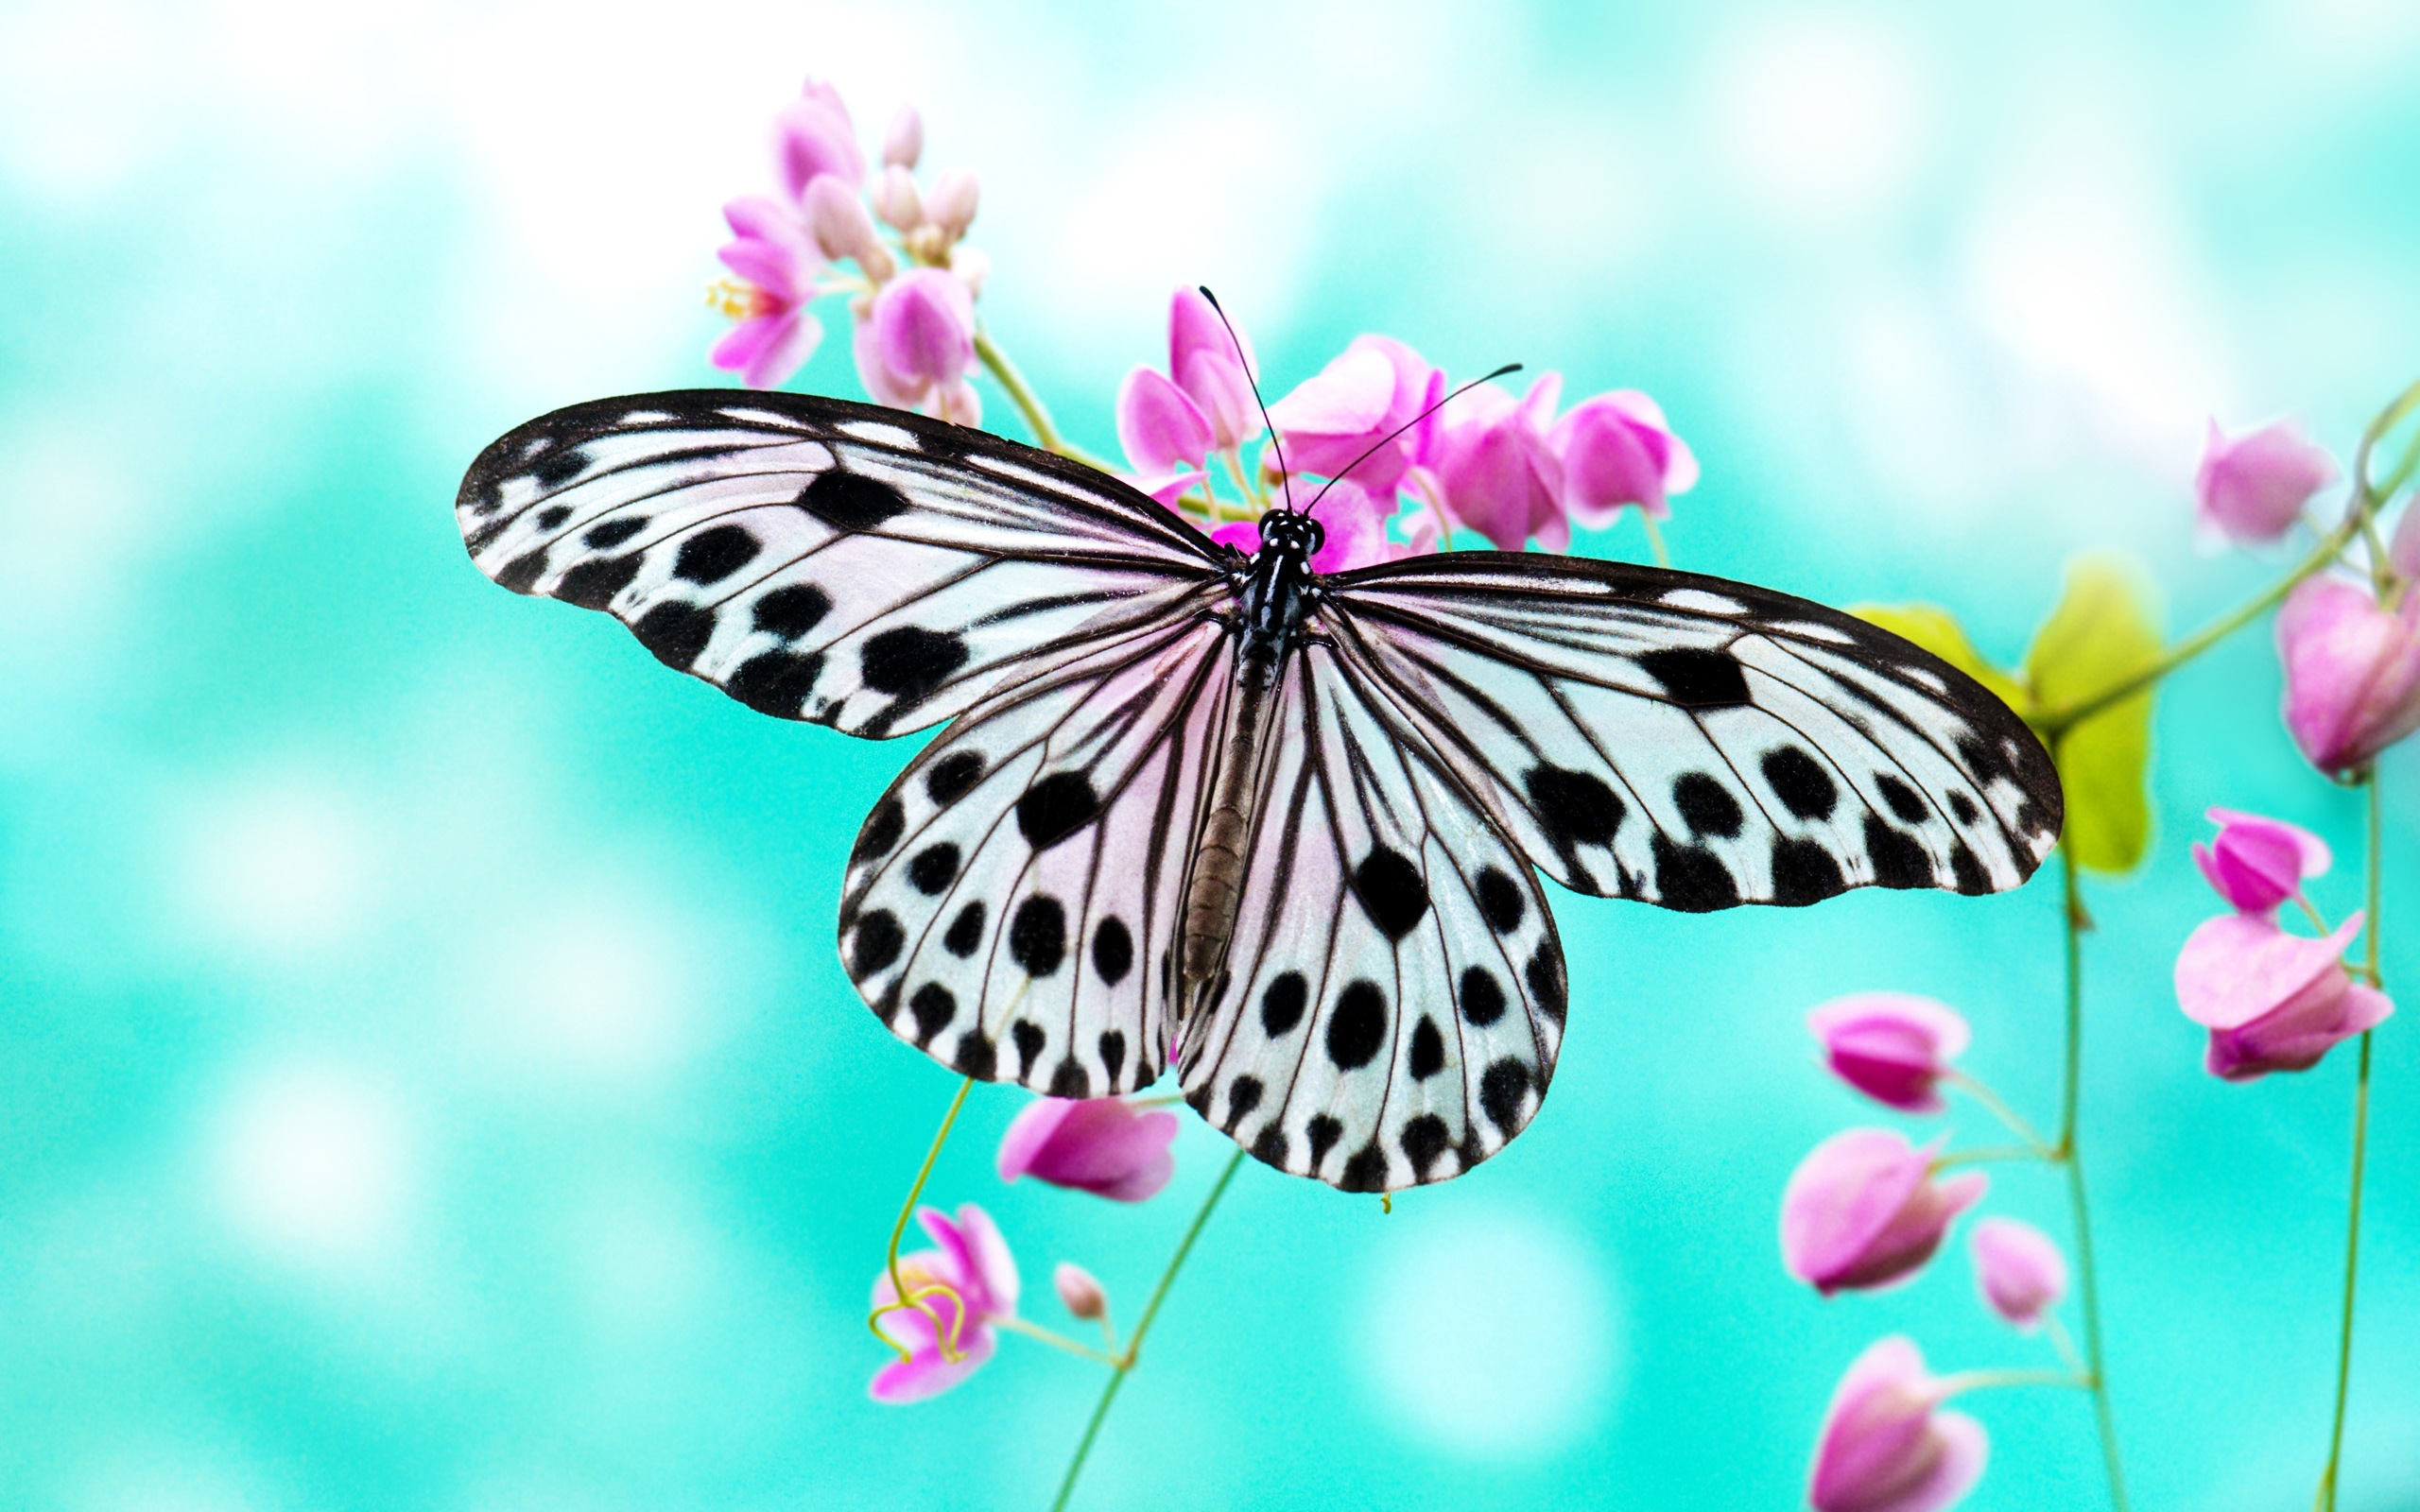 Cute Butterfly Desktop Wallpapers   52DazheW Gallery 2560x1600